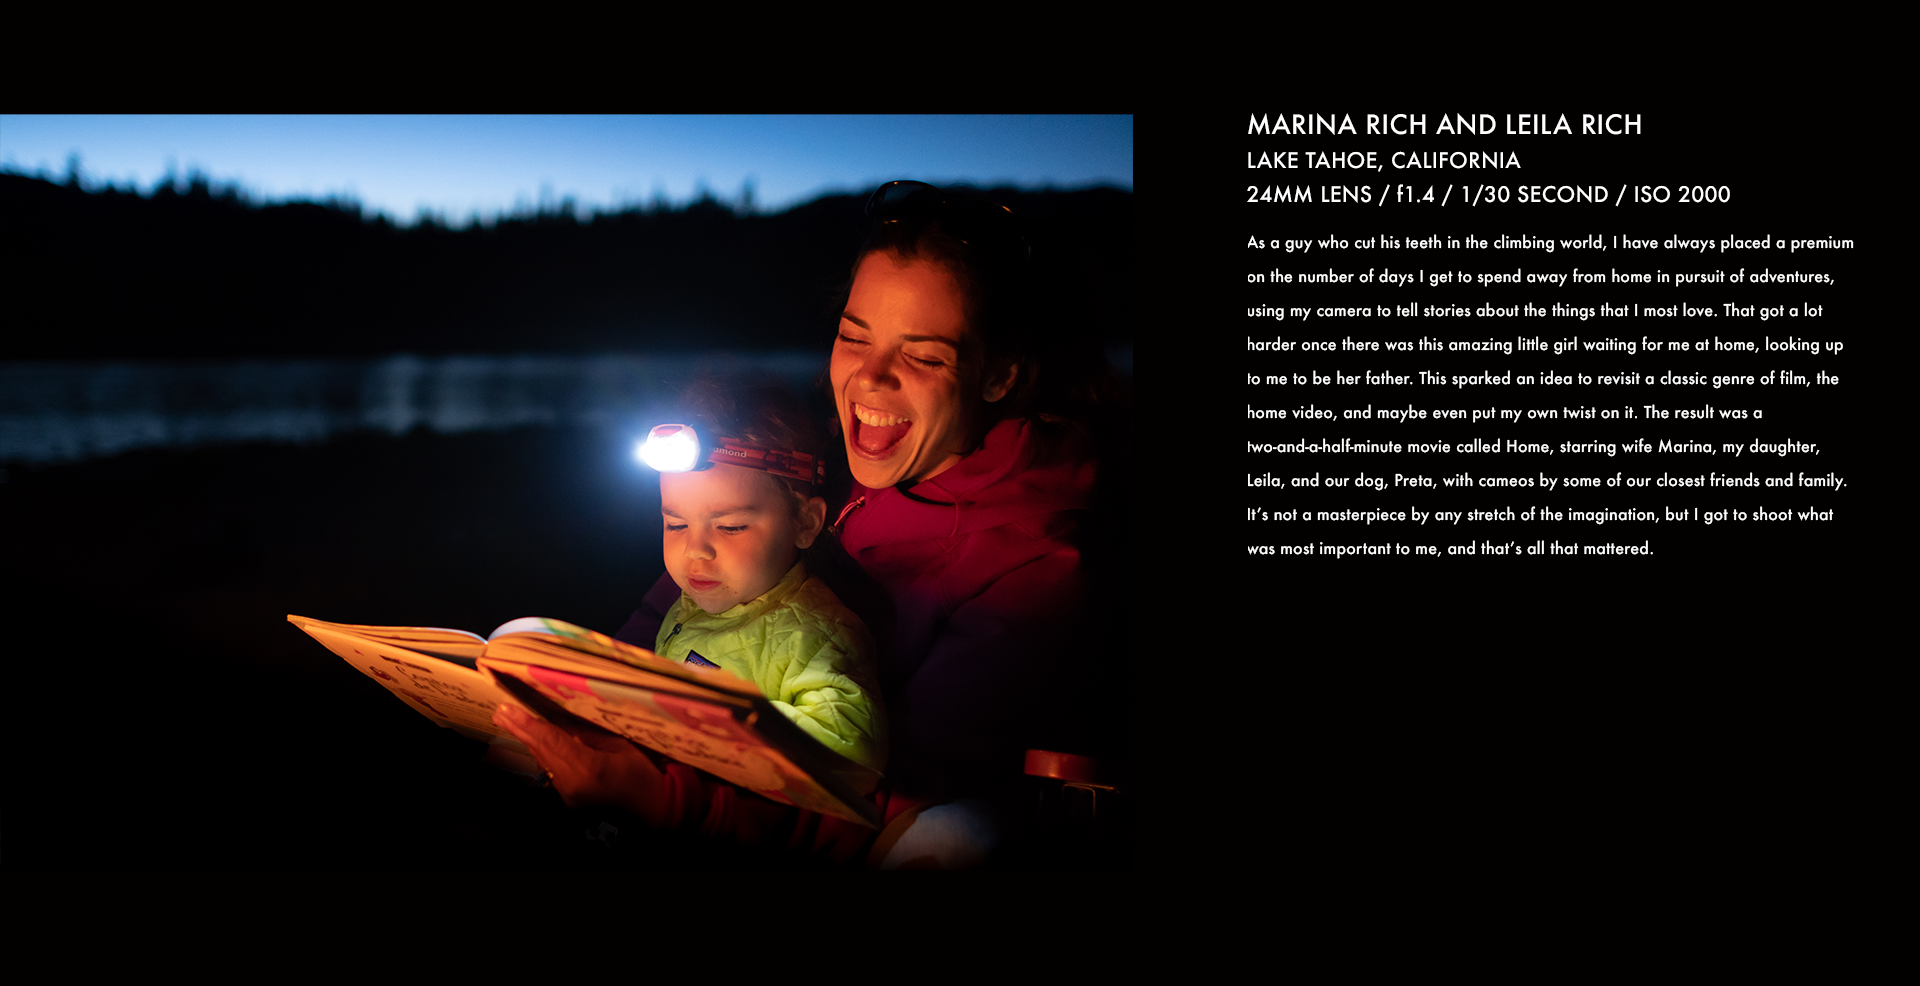 leila rich, marina rich, corey rich, nikon, stories behind the images, book, photo